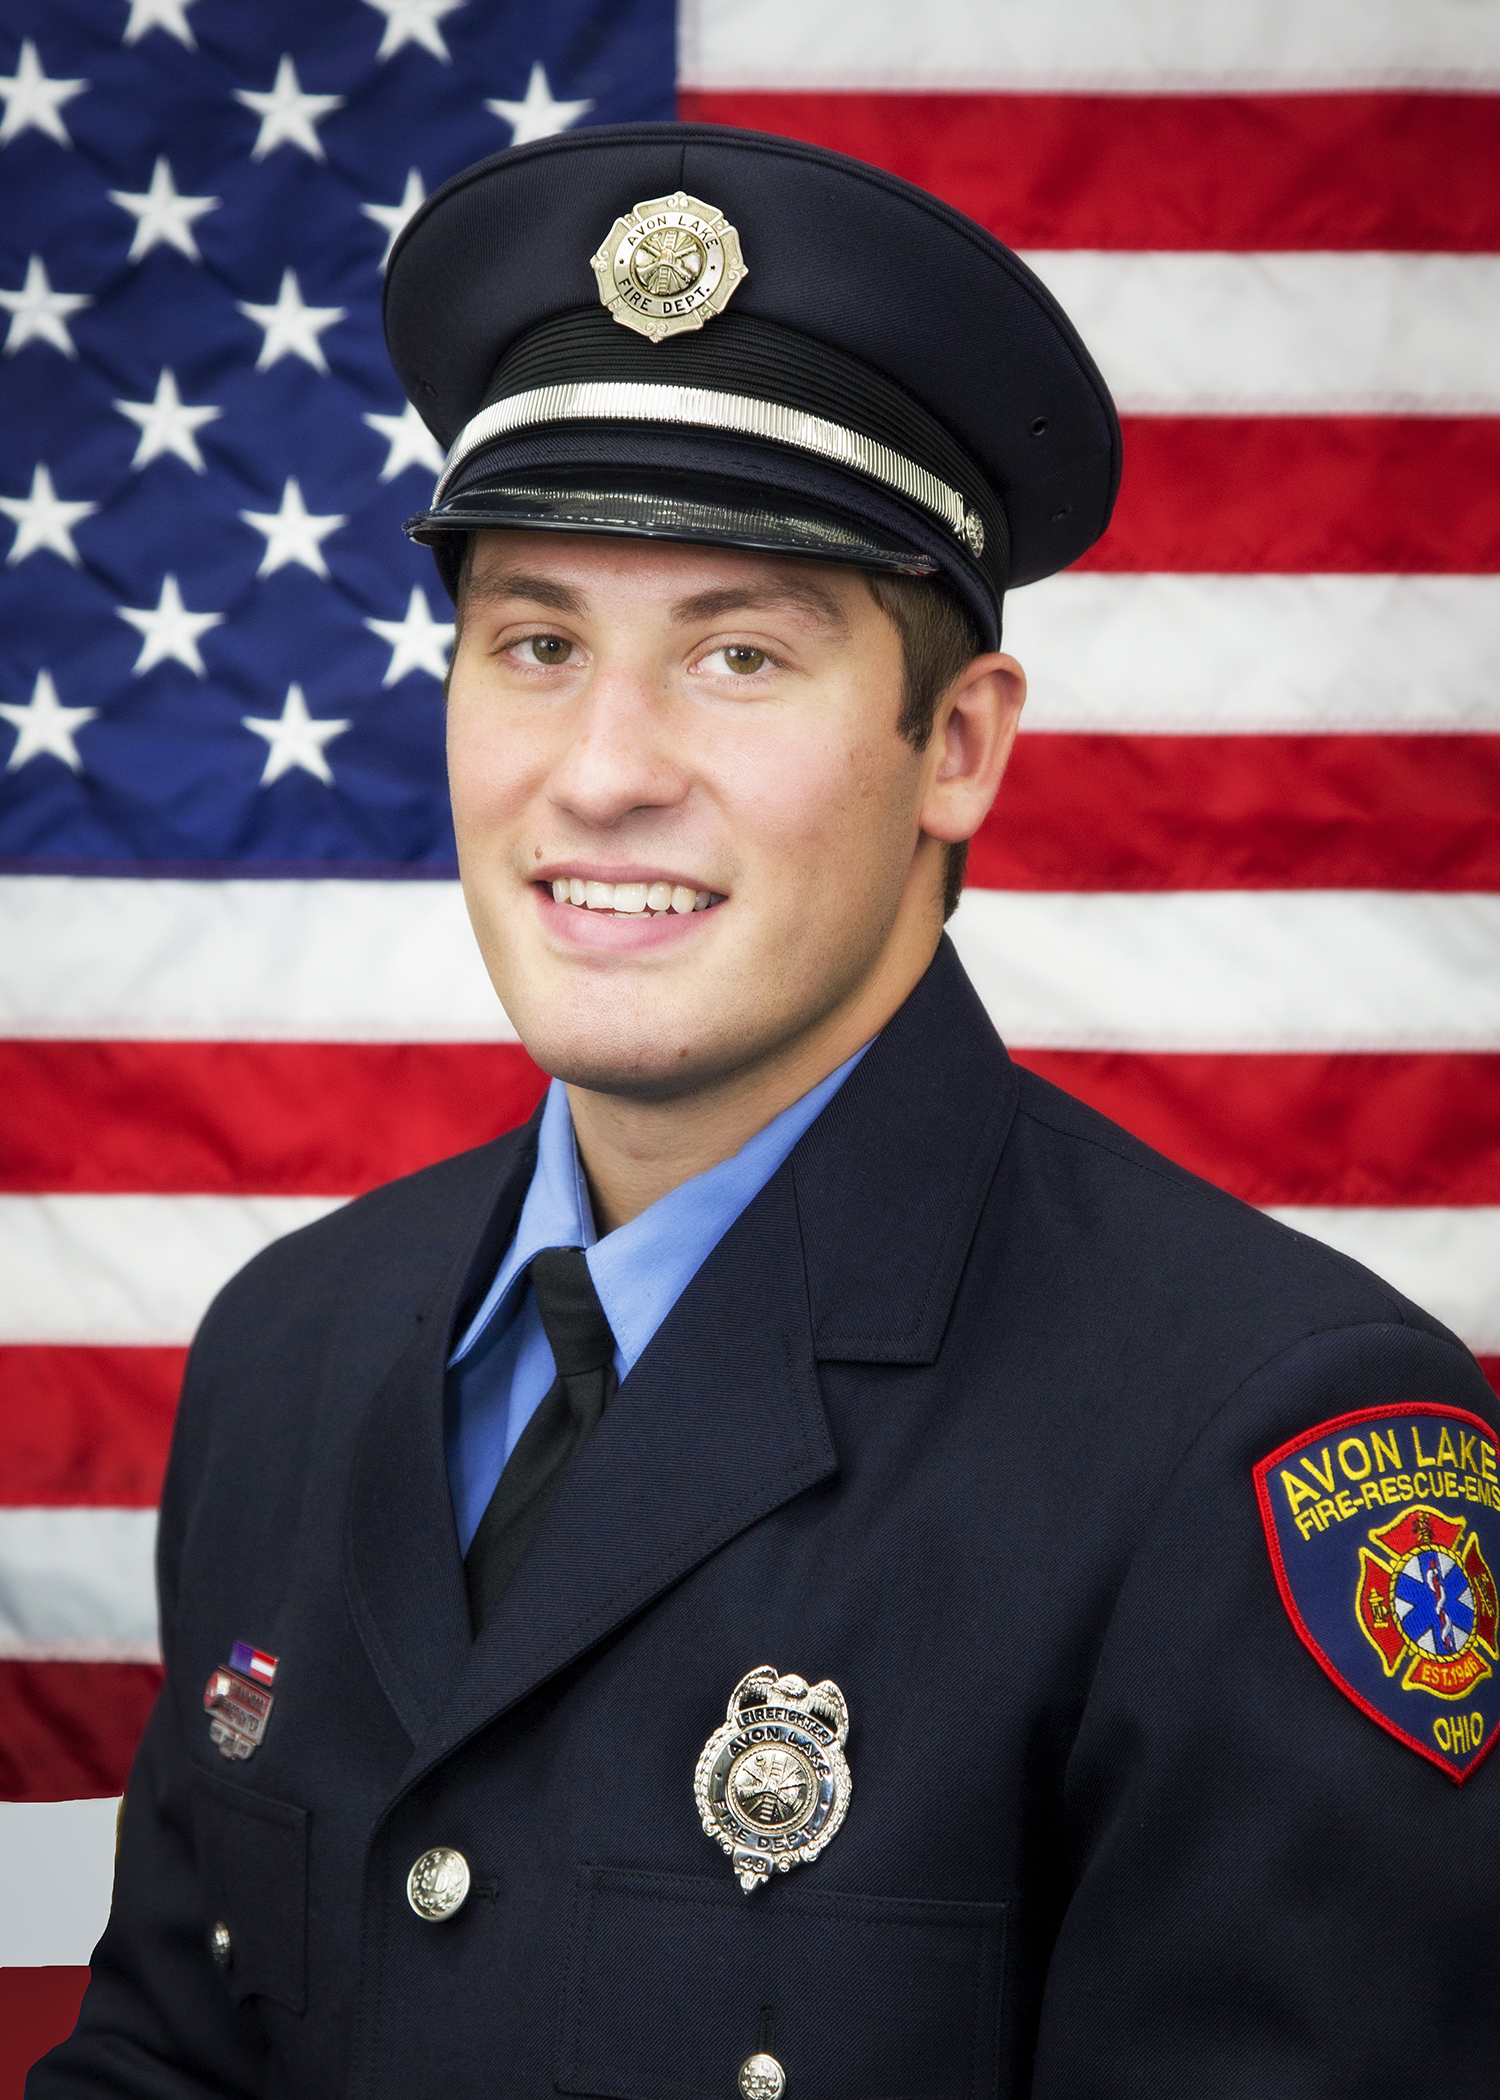 Firefighter/Paramedic Brian Wood